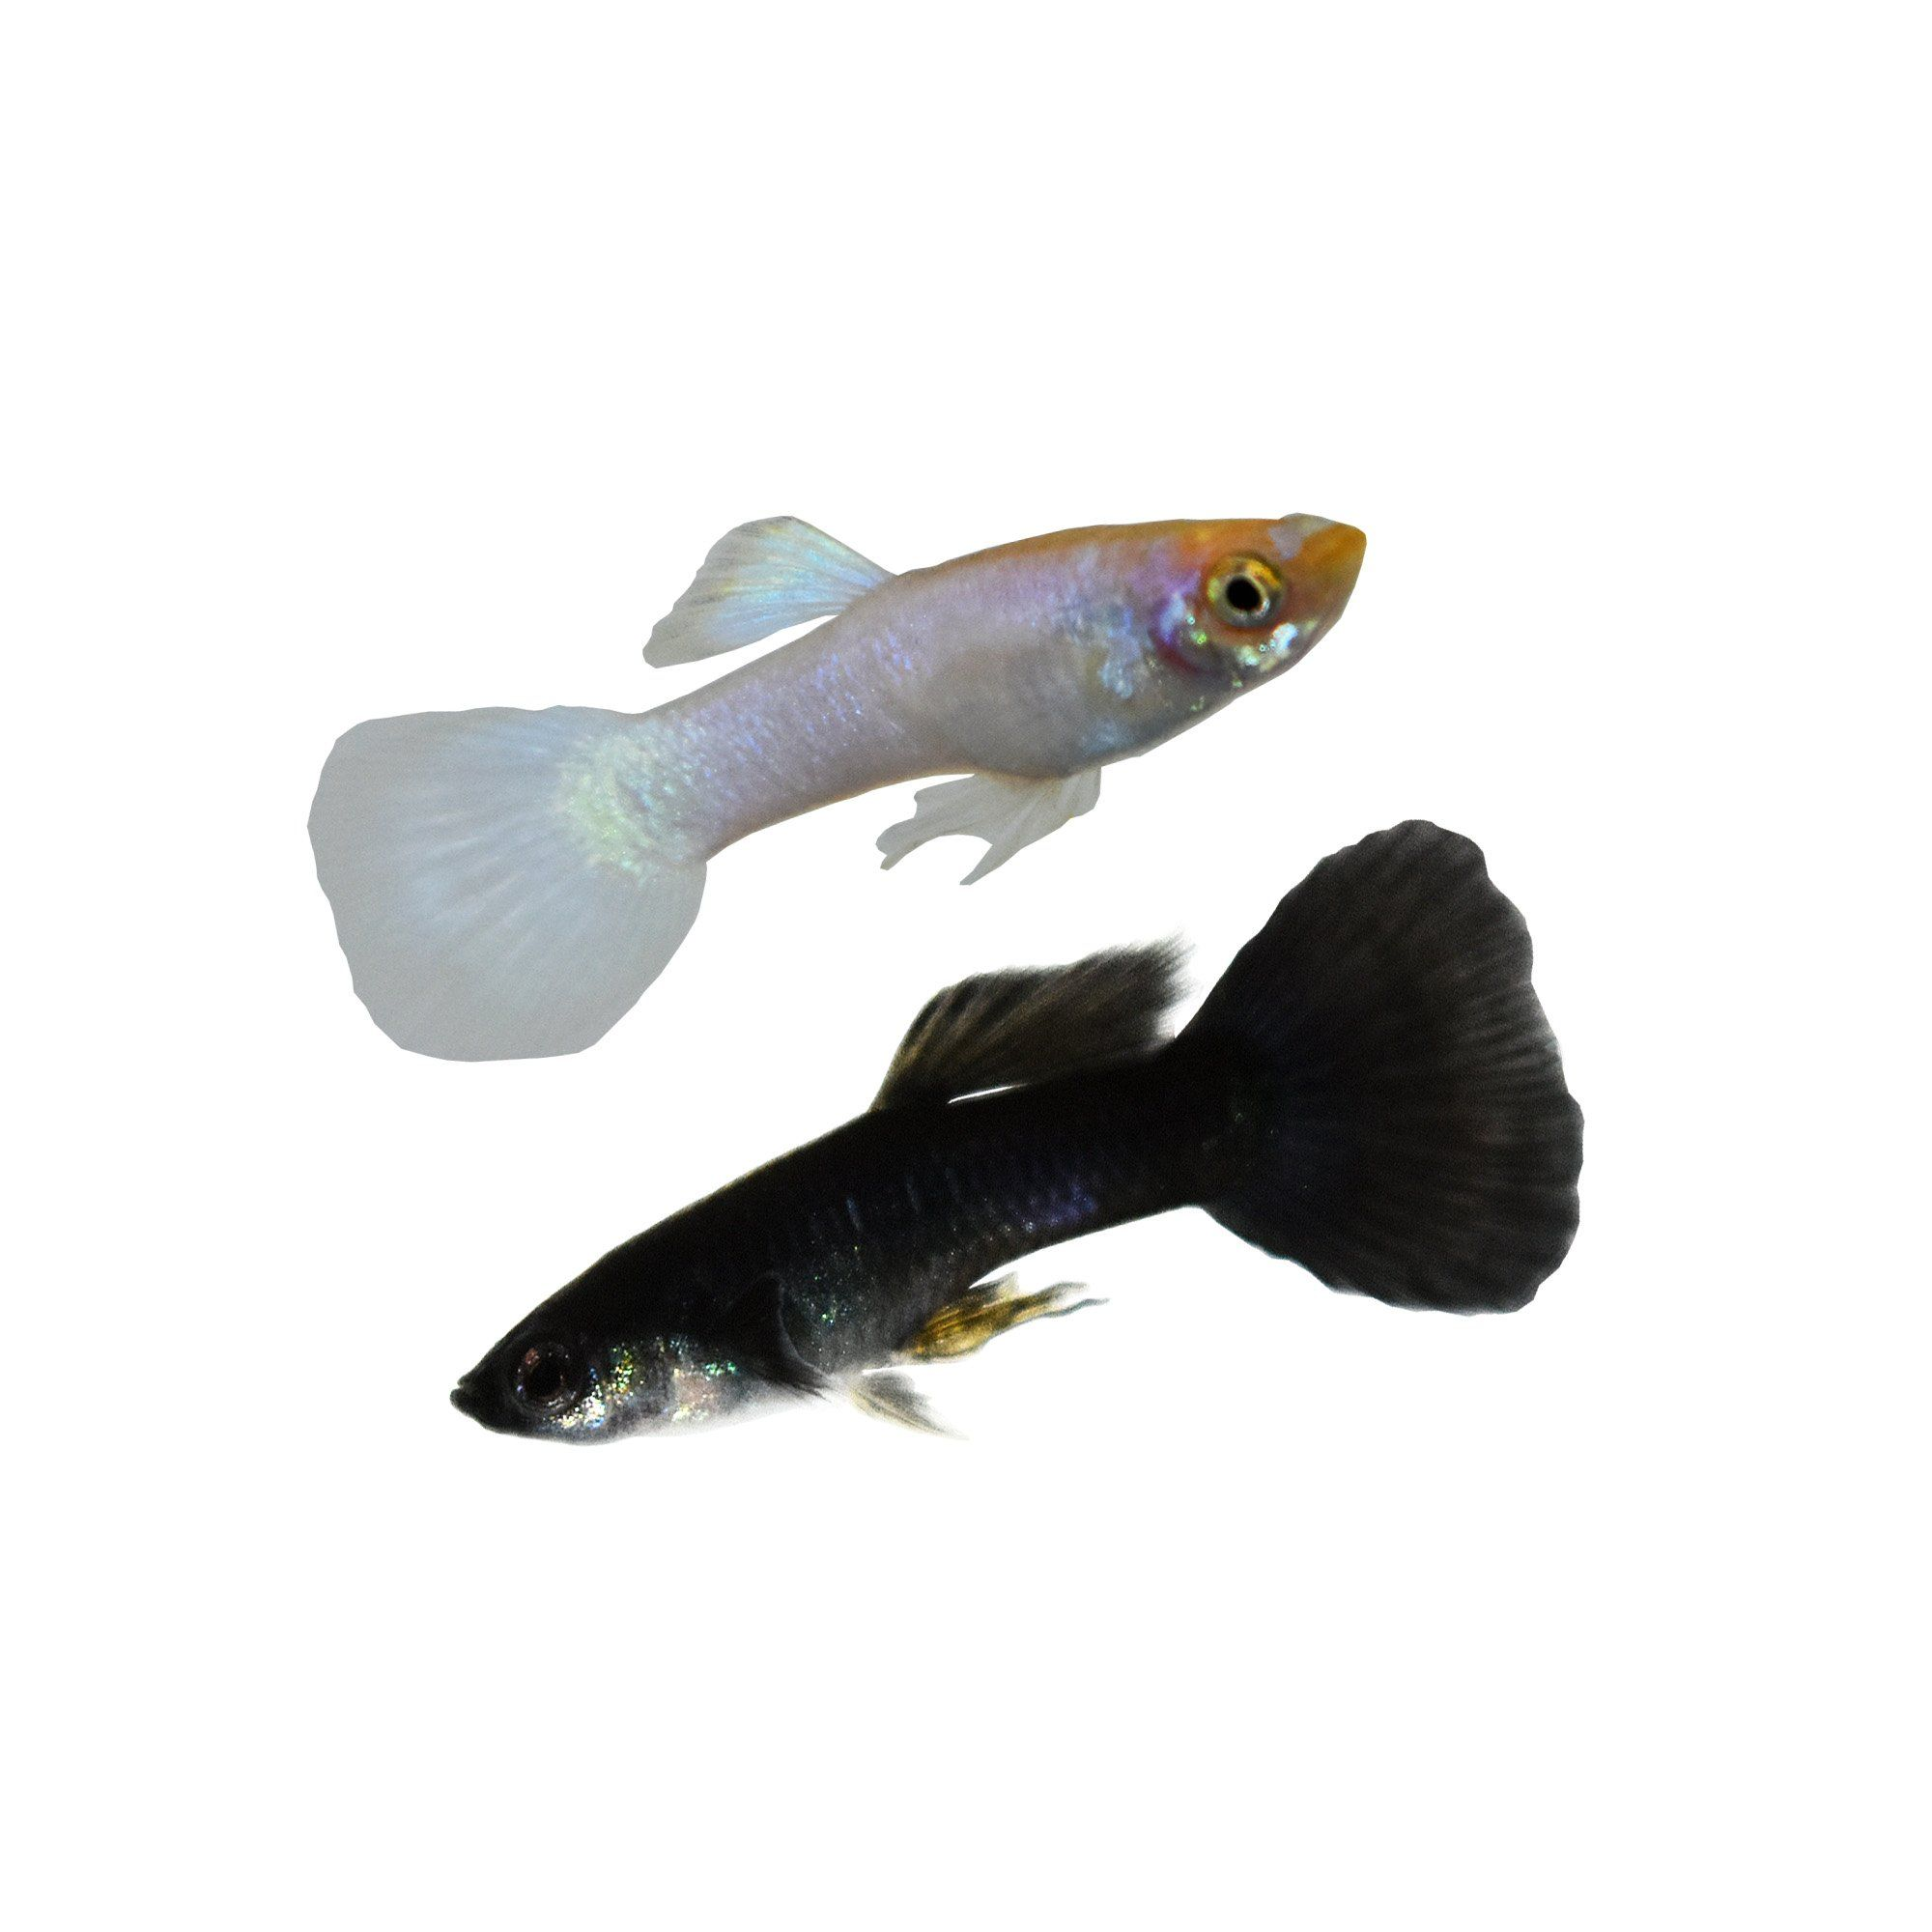 Male Yin Yang Guppys For Sale Order Online Petco In 2020 Yin Yang Fish Petco Fish Pet